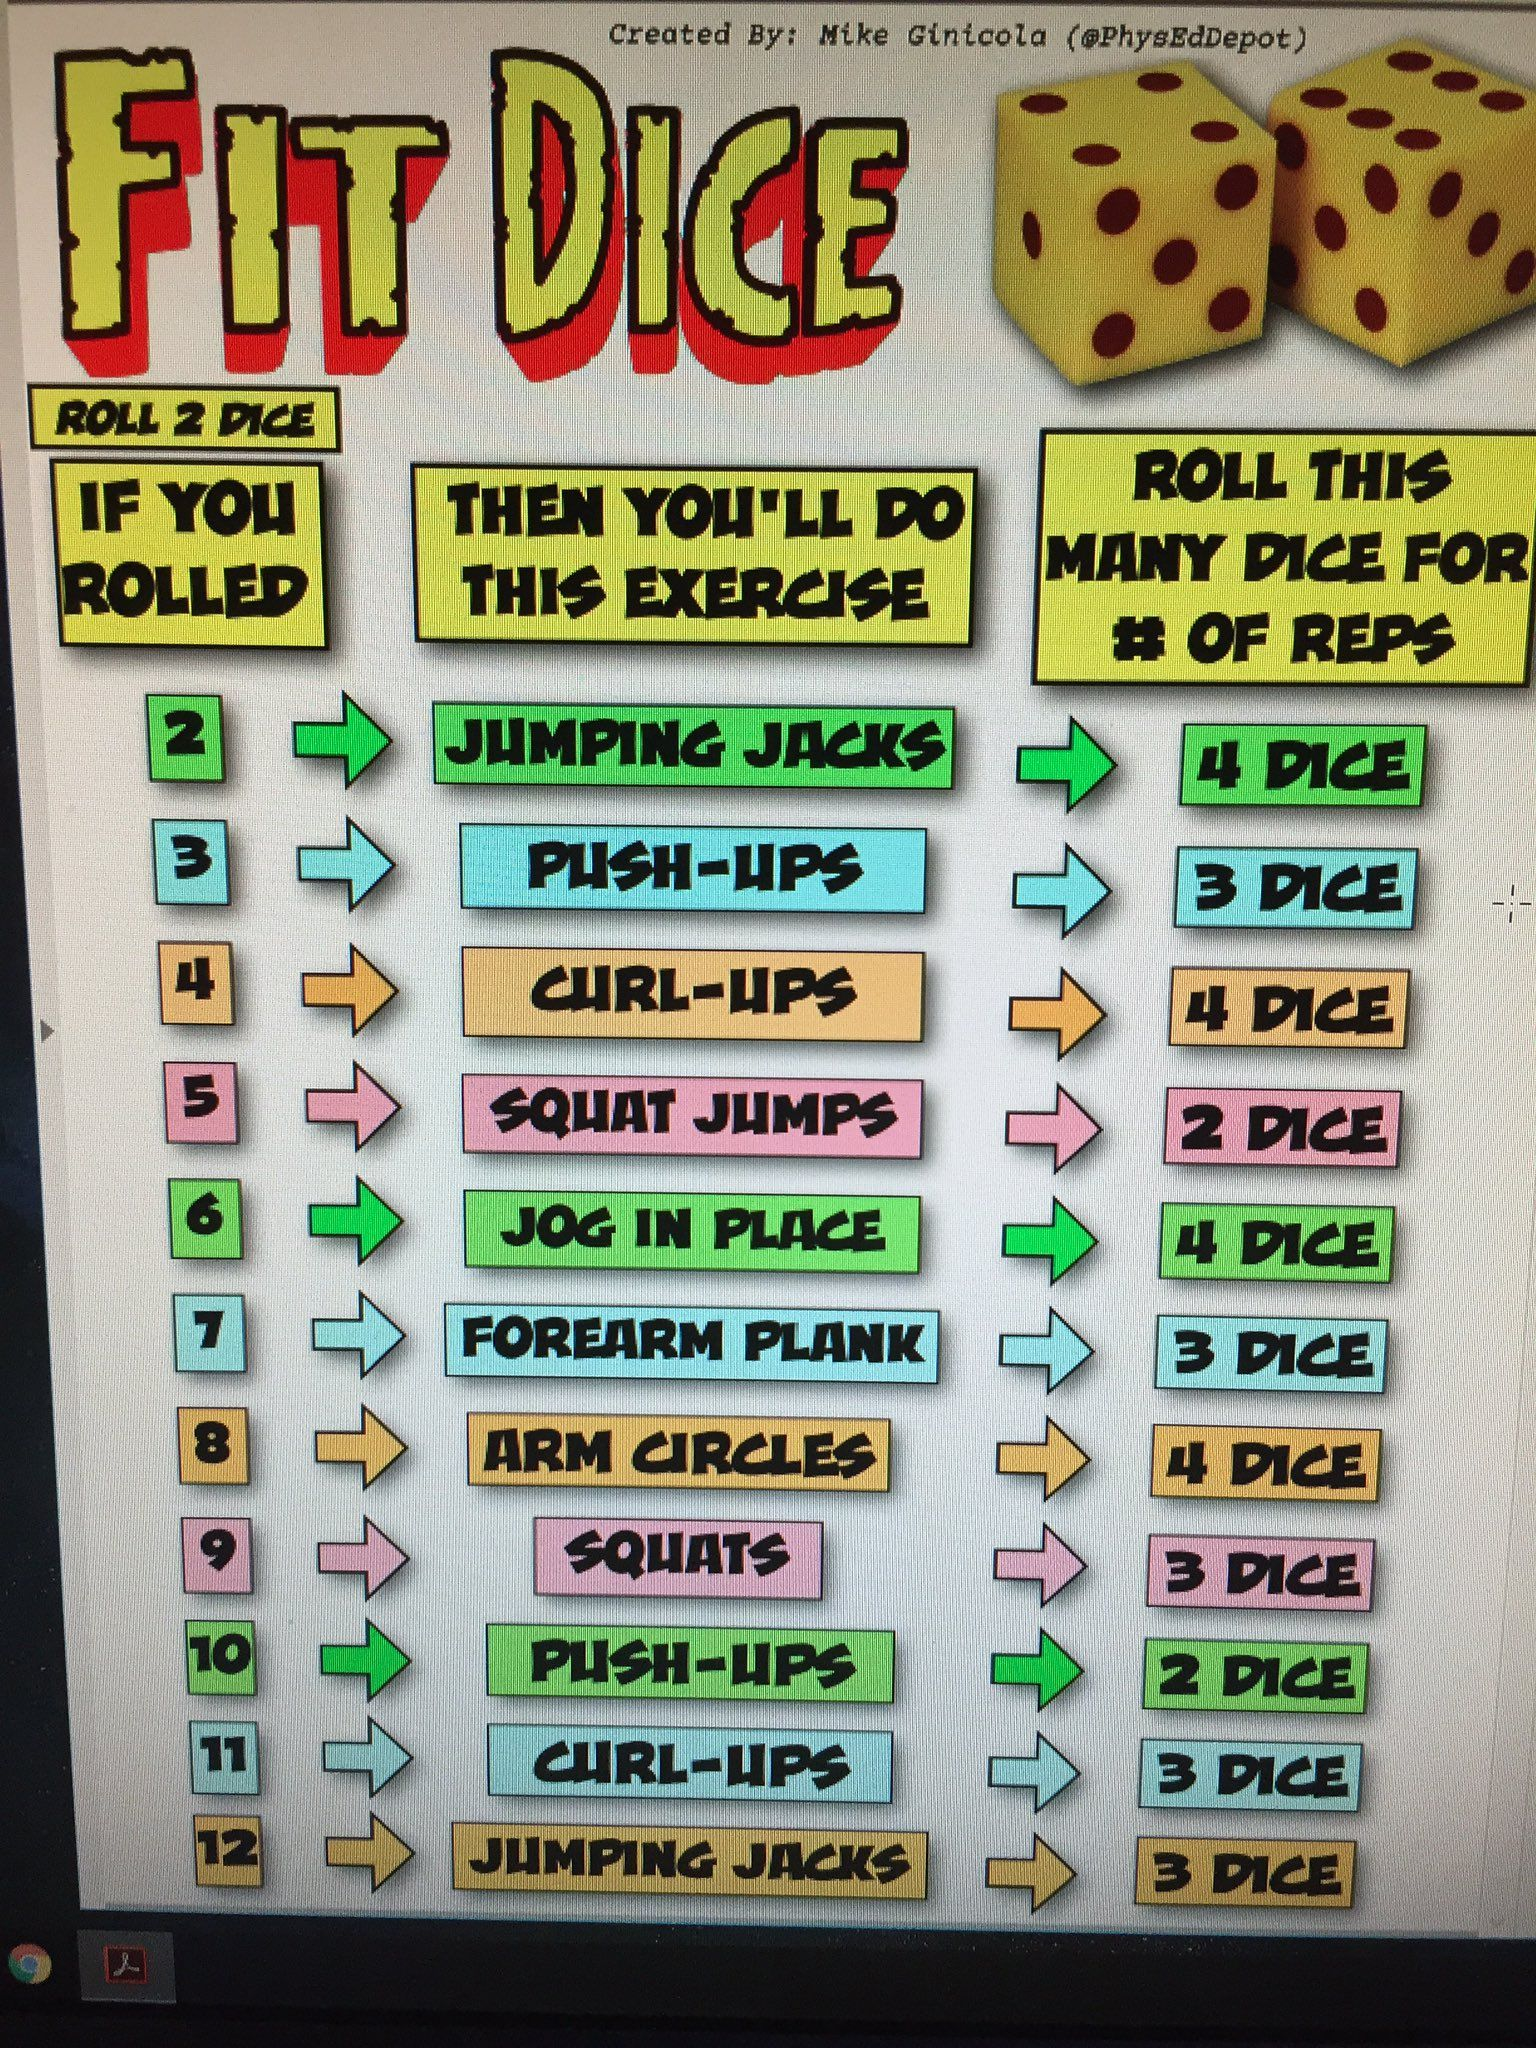 Fit Dice Pdf Physeddepot Physed Fun Games And Activities